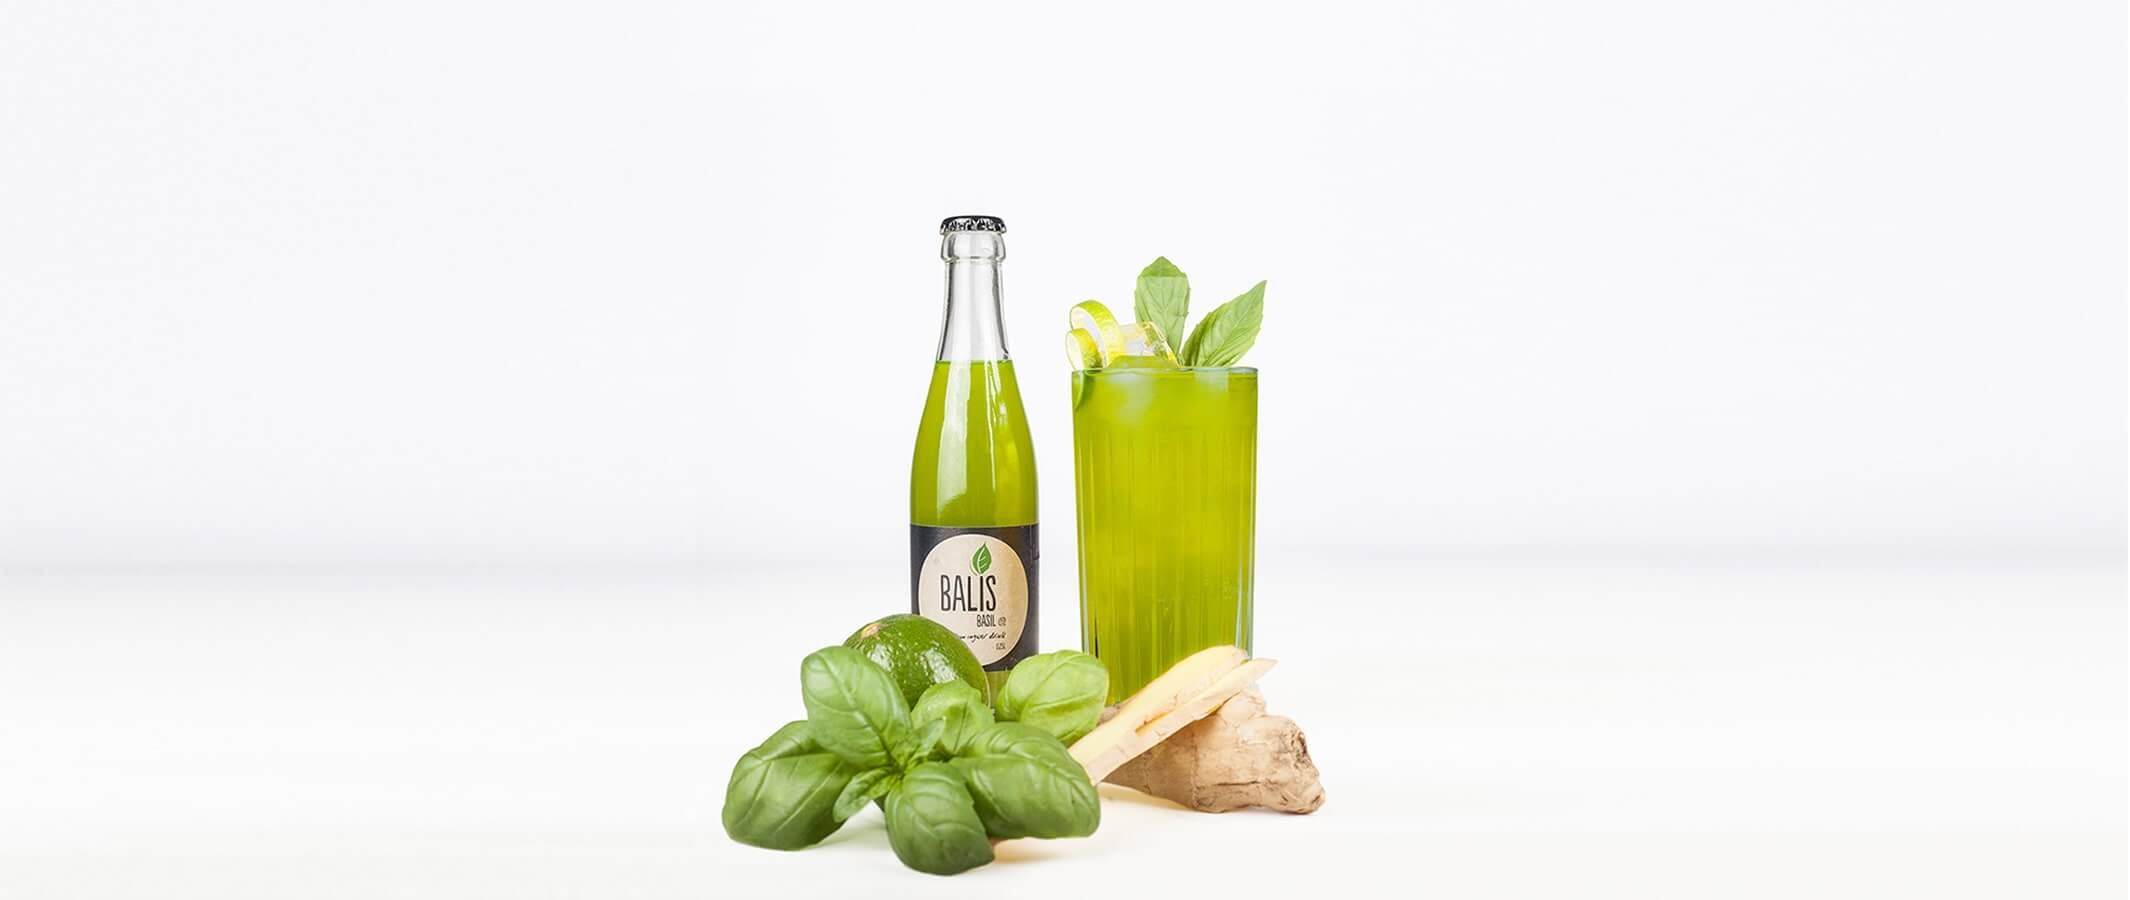 BALIS Basil Drinks Indexseite Drinks